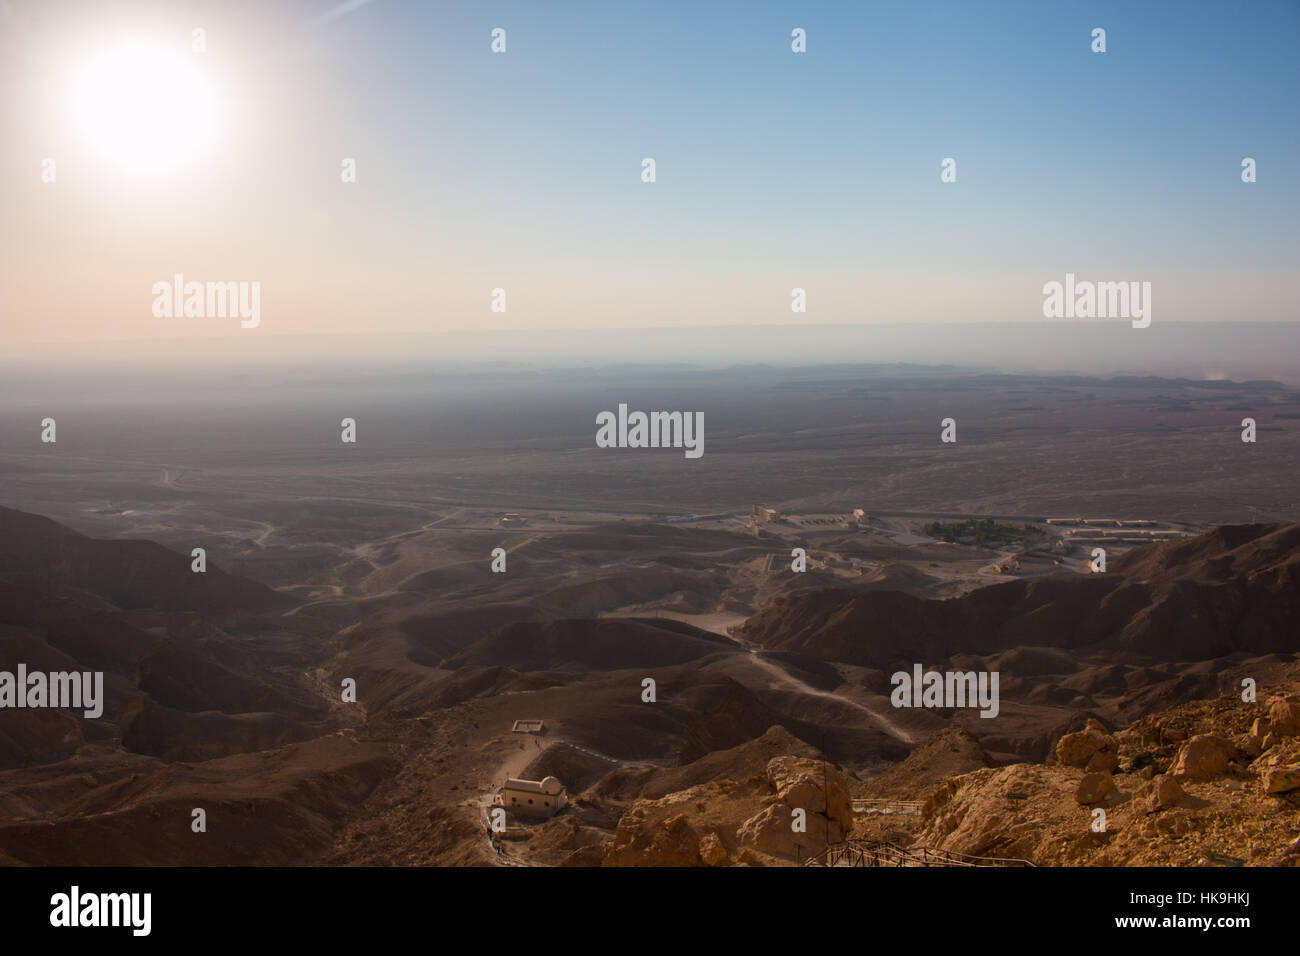 A view from the top of the mountain by St. Anthony's Monastery in Egypt Stock Photo